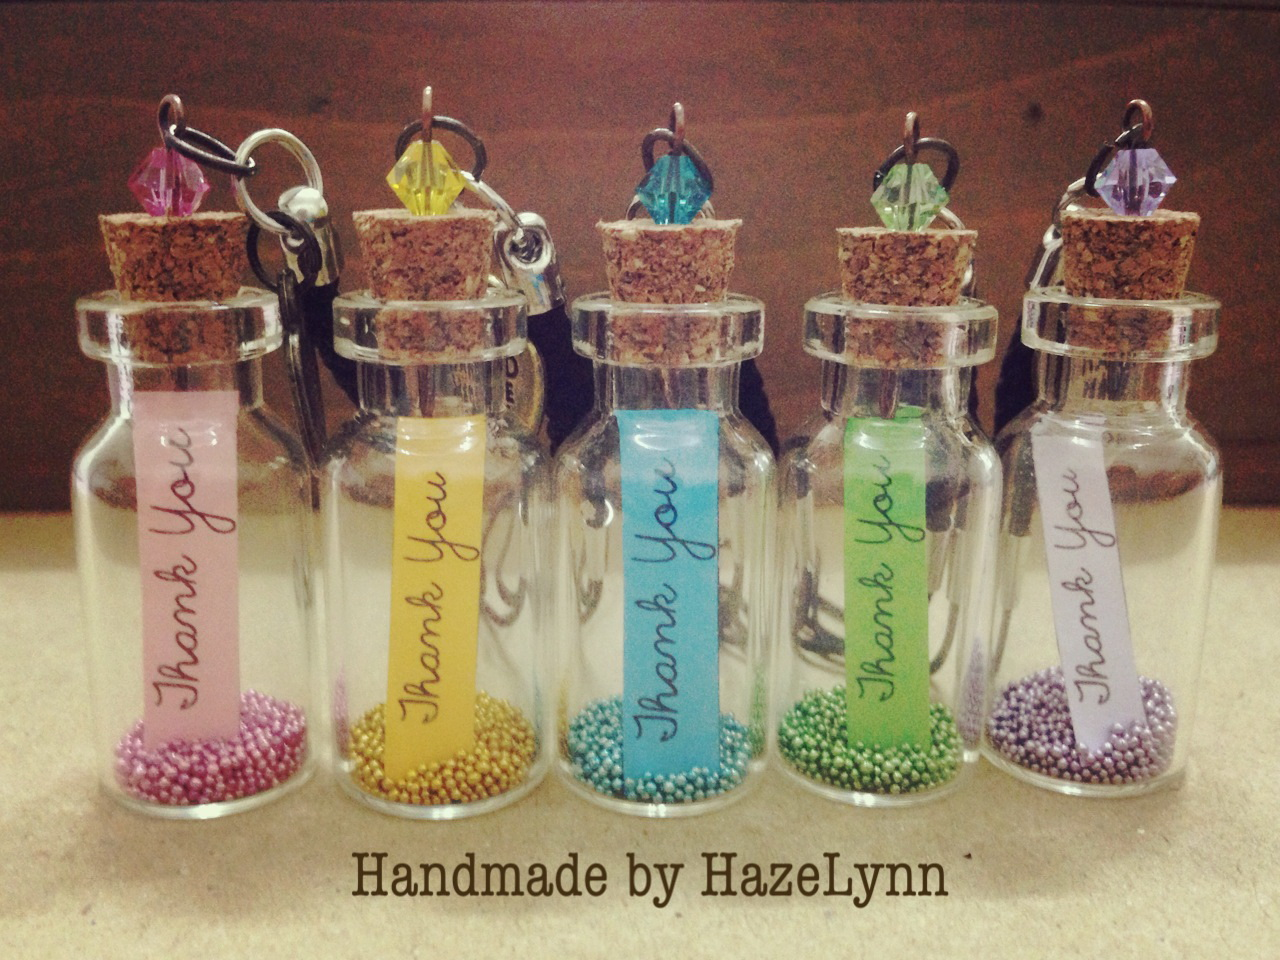 Gift For Guests At Wedding: Handmade By Hazelynn: Gift Idea: Thank You Bottle